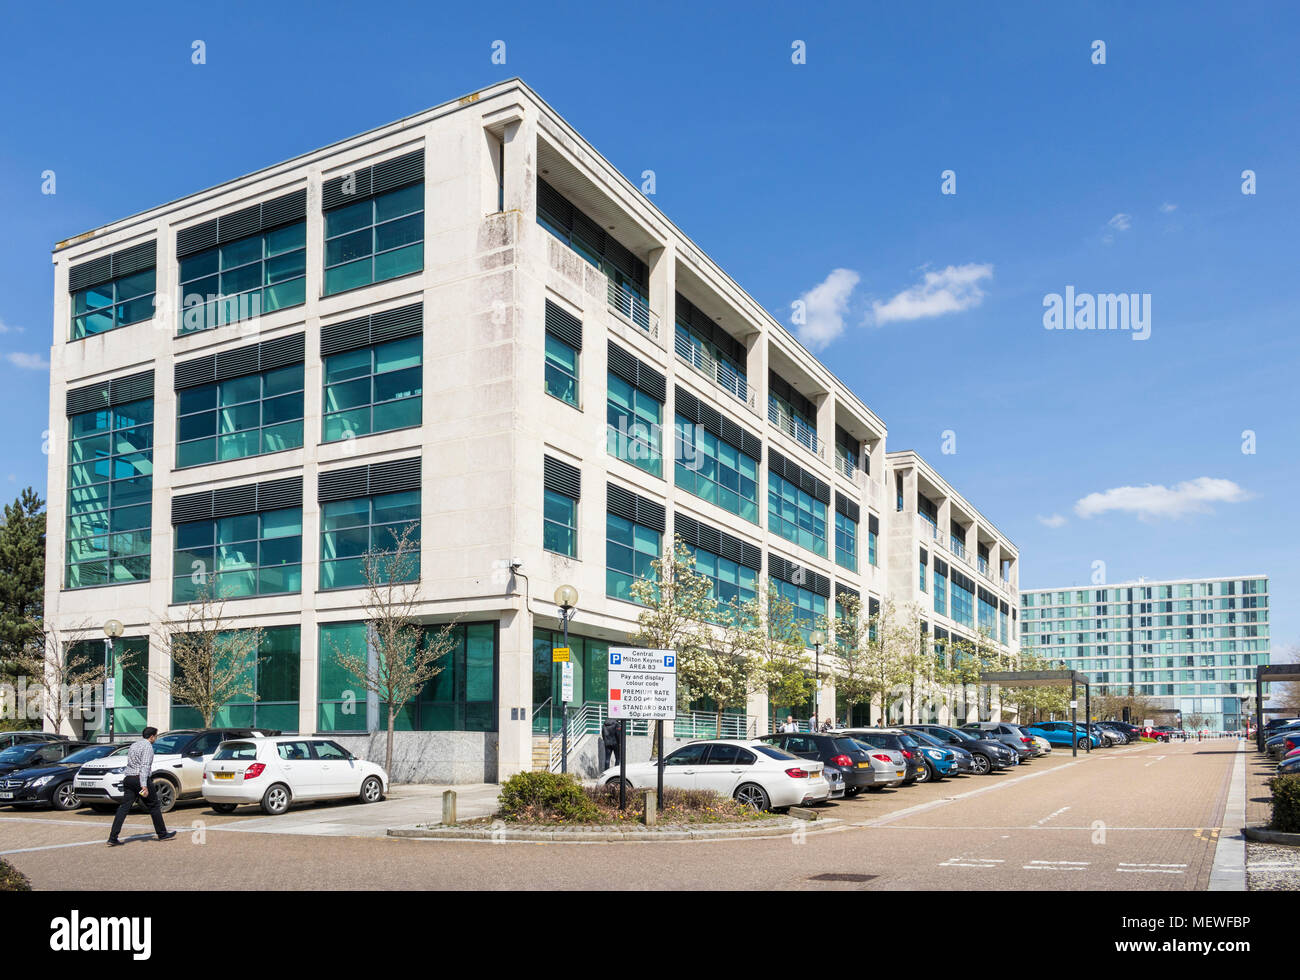 Milton Keynes England office buildings central milton keynes gb uk europe - Stock Image